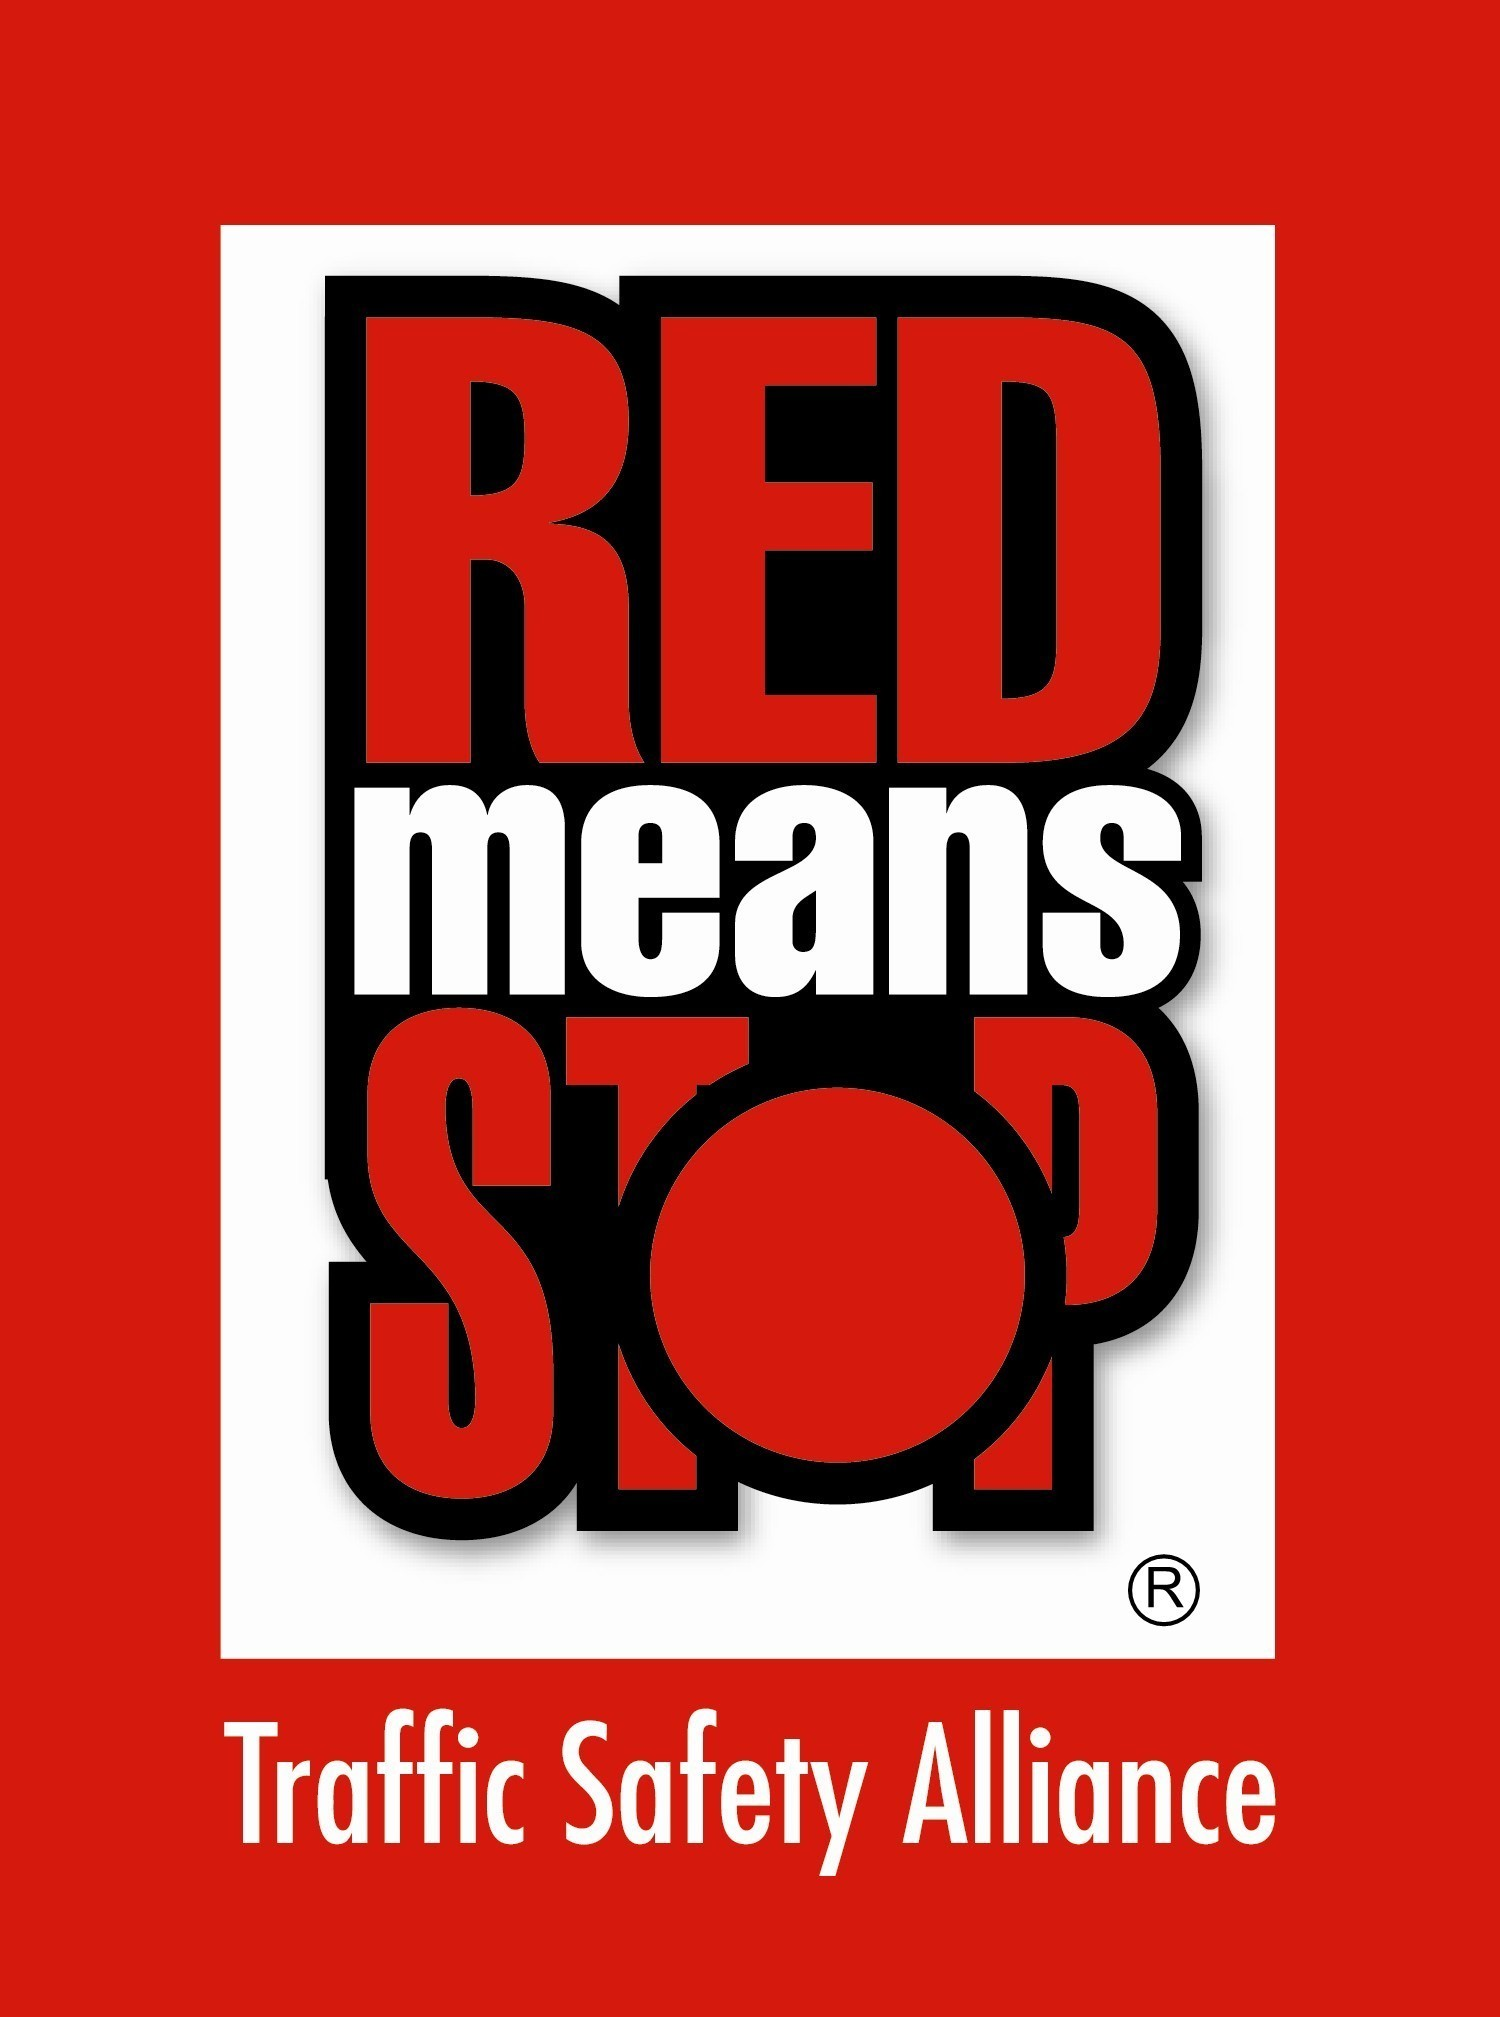 Red Means Stop Traffic Safety Alliance Logo